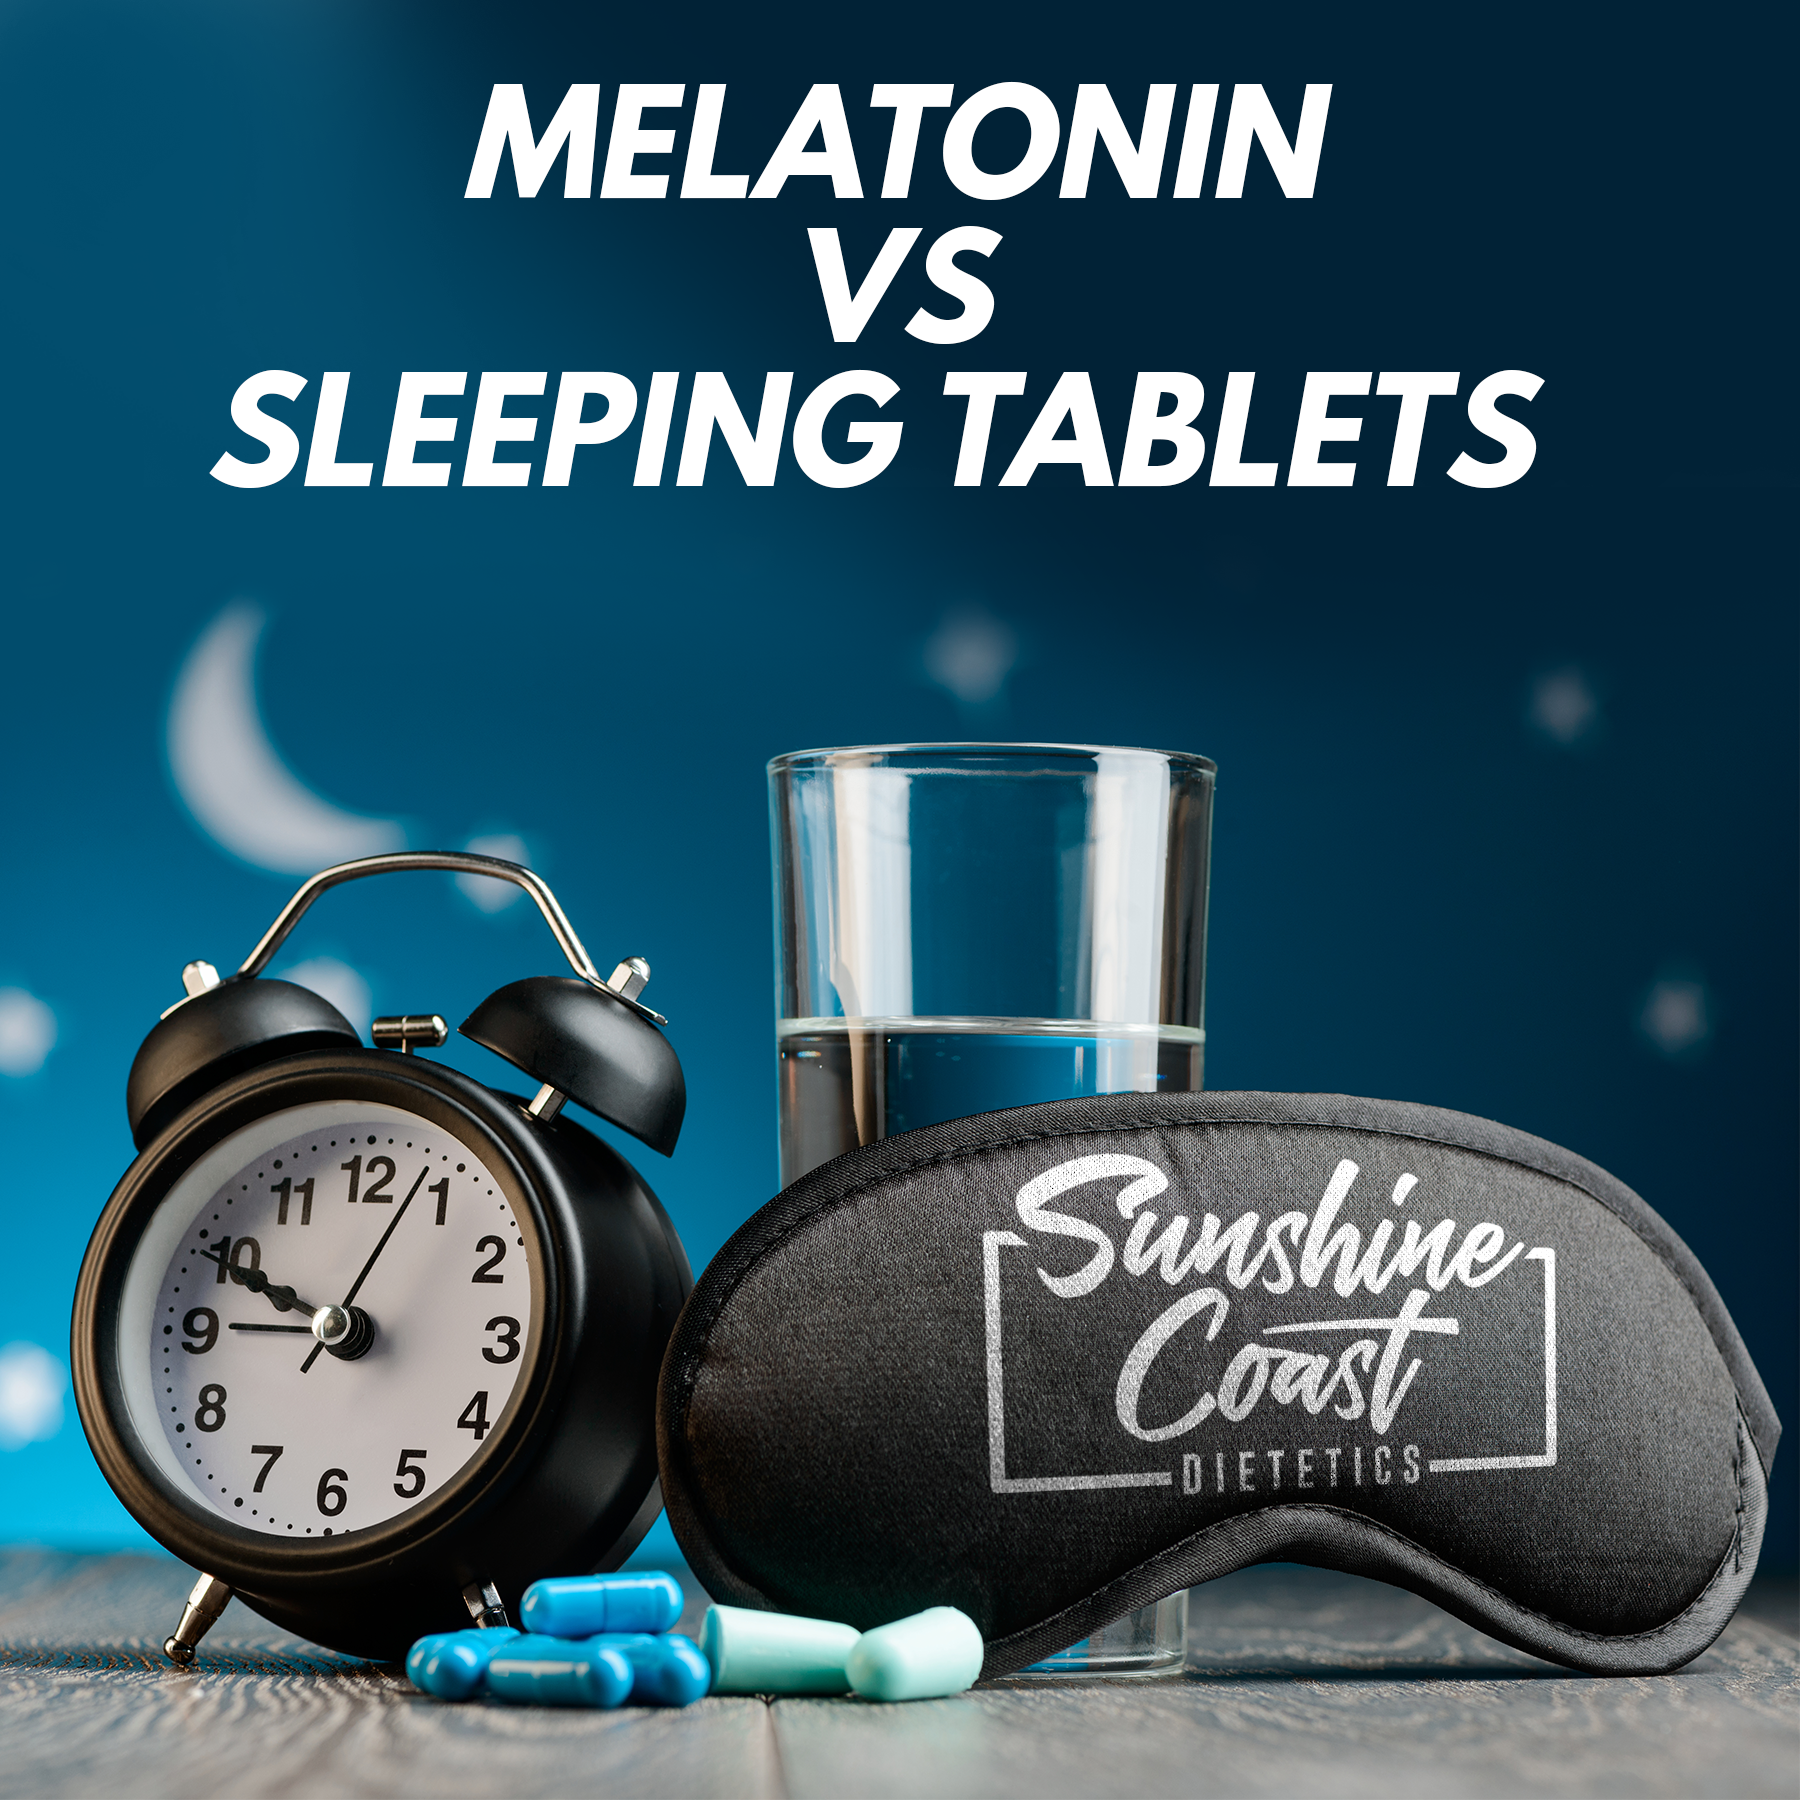 Melatonin VS Sleeping Tablets?